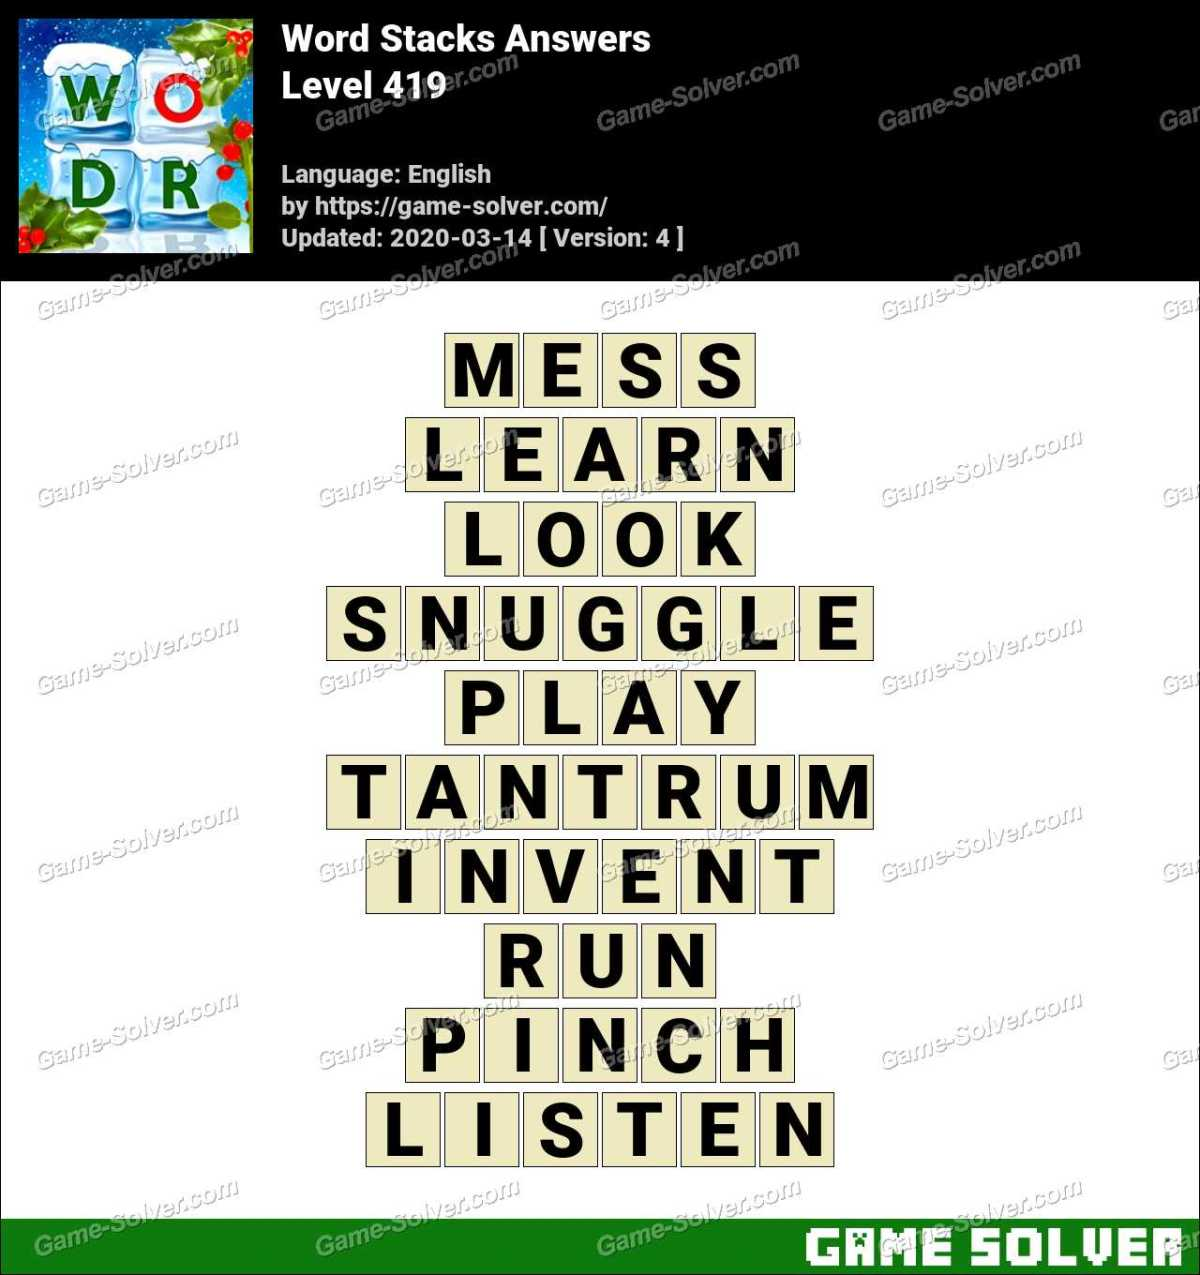 Word Stacks Level 419 Answers